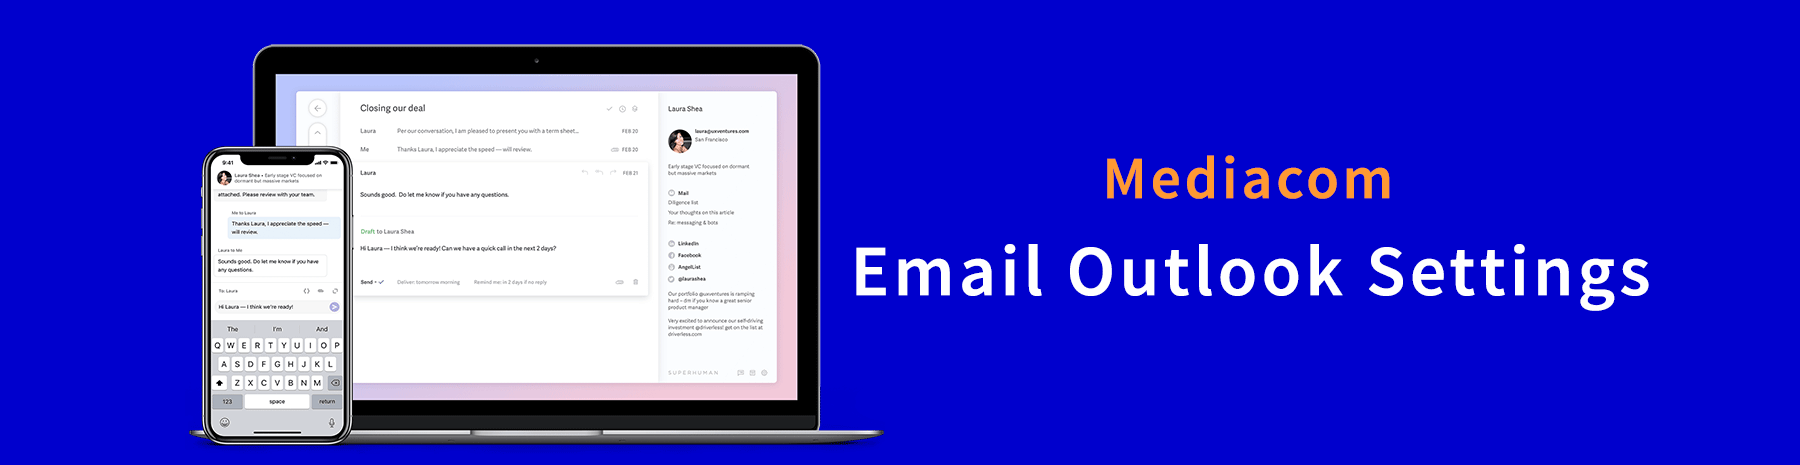 Mediacom-Email-Outlook-Settings-Mediacom-Email